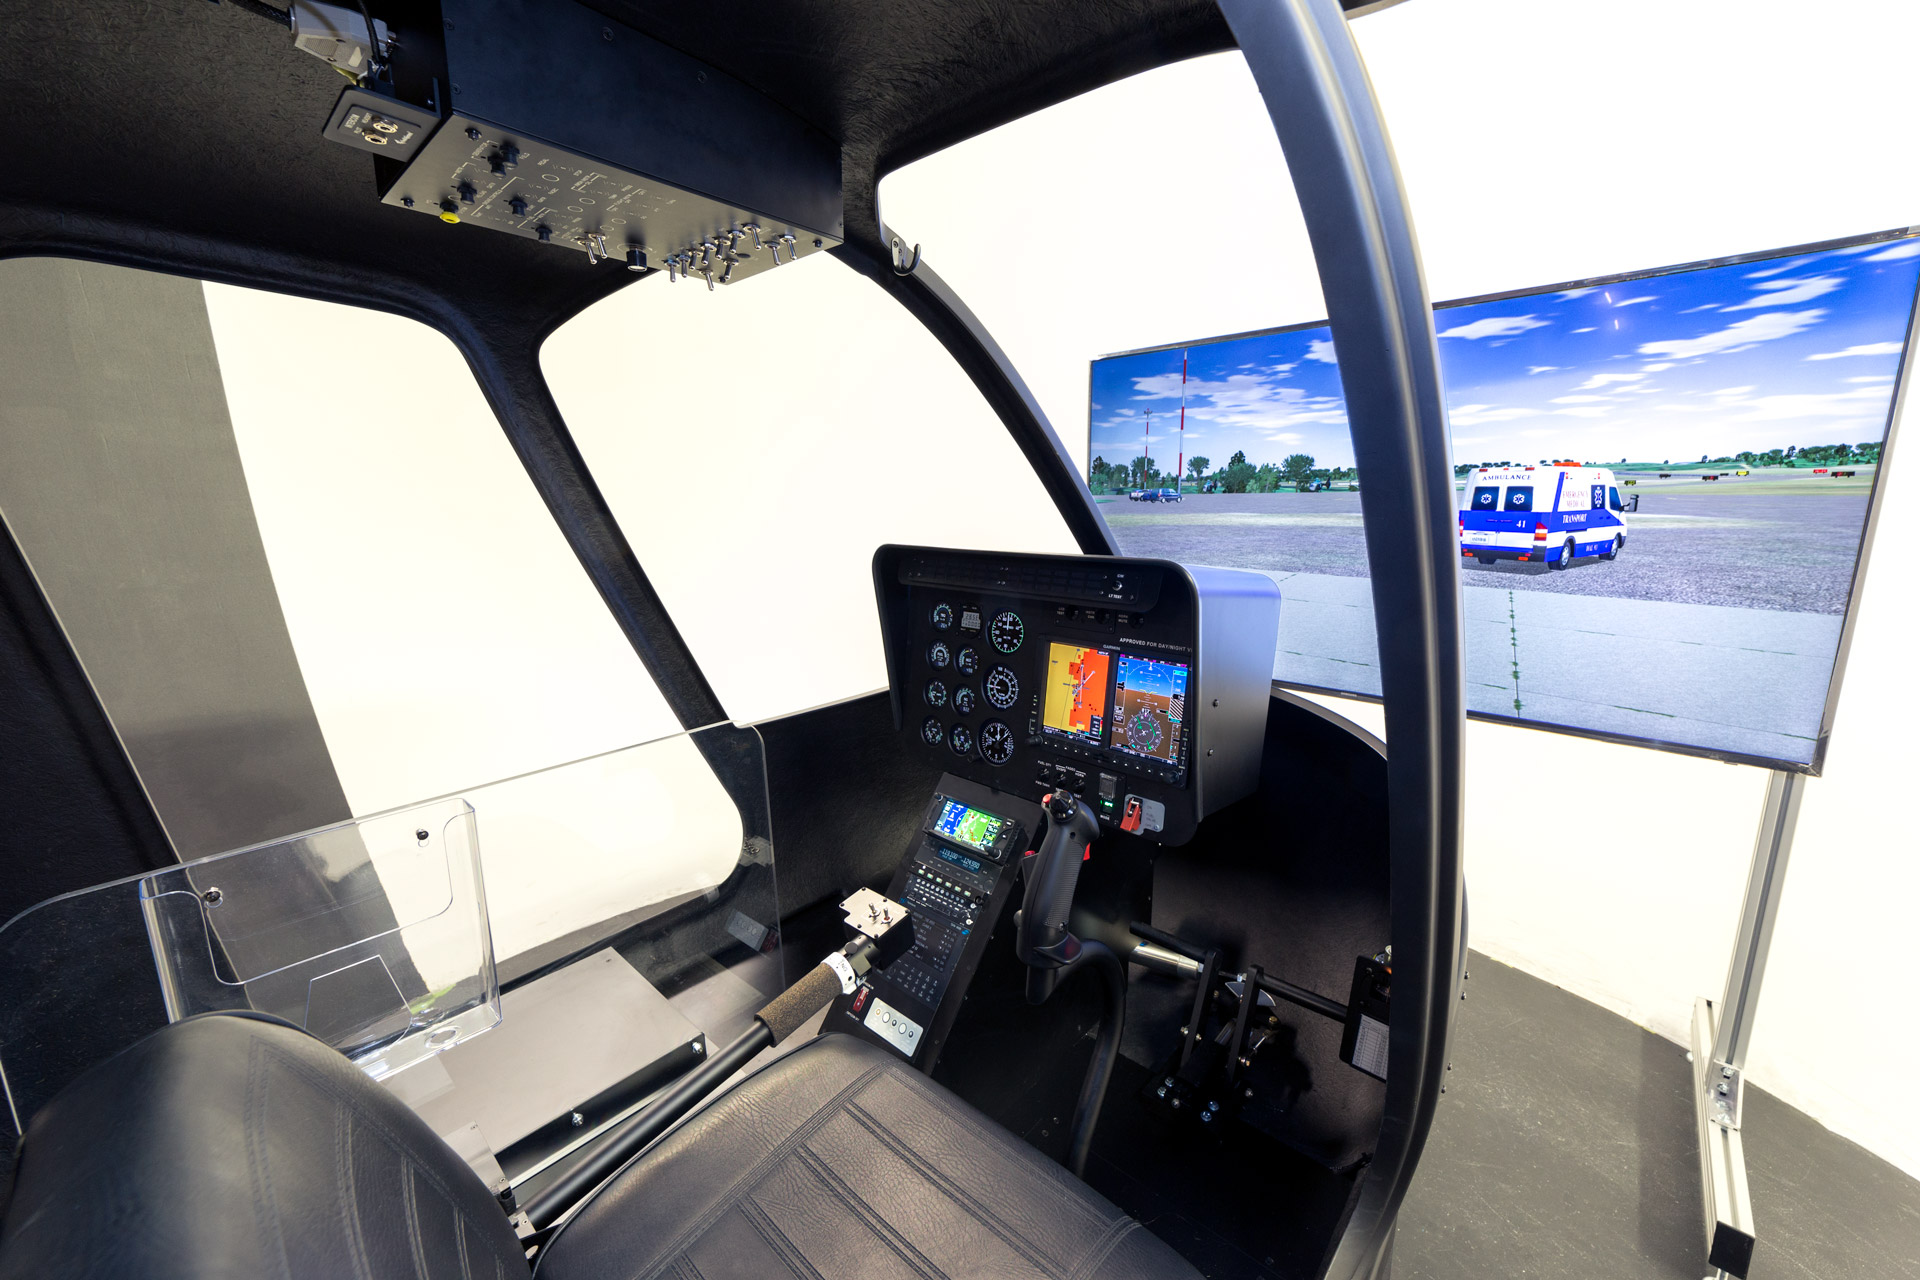 Frasca Helicopter Training Device HTD